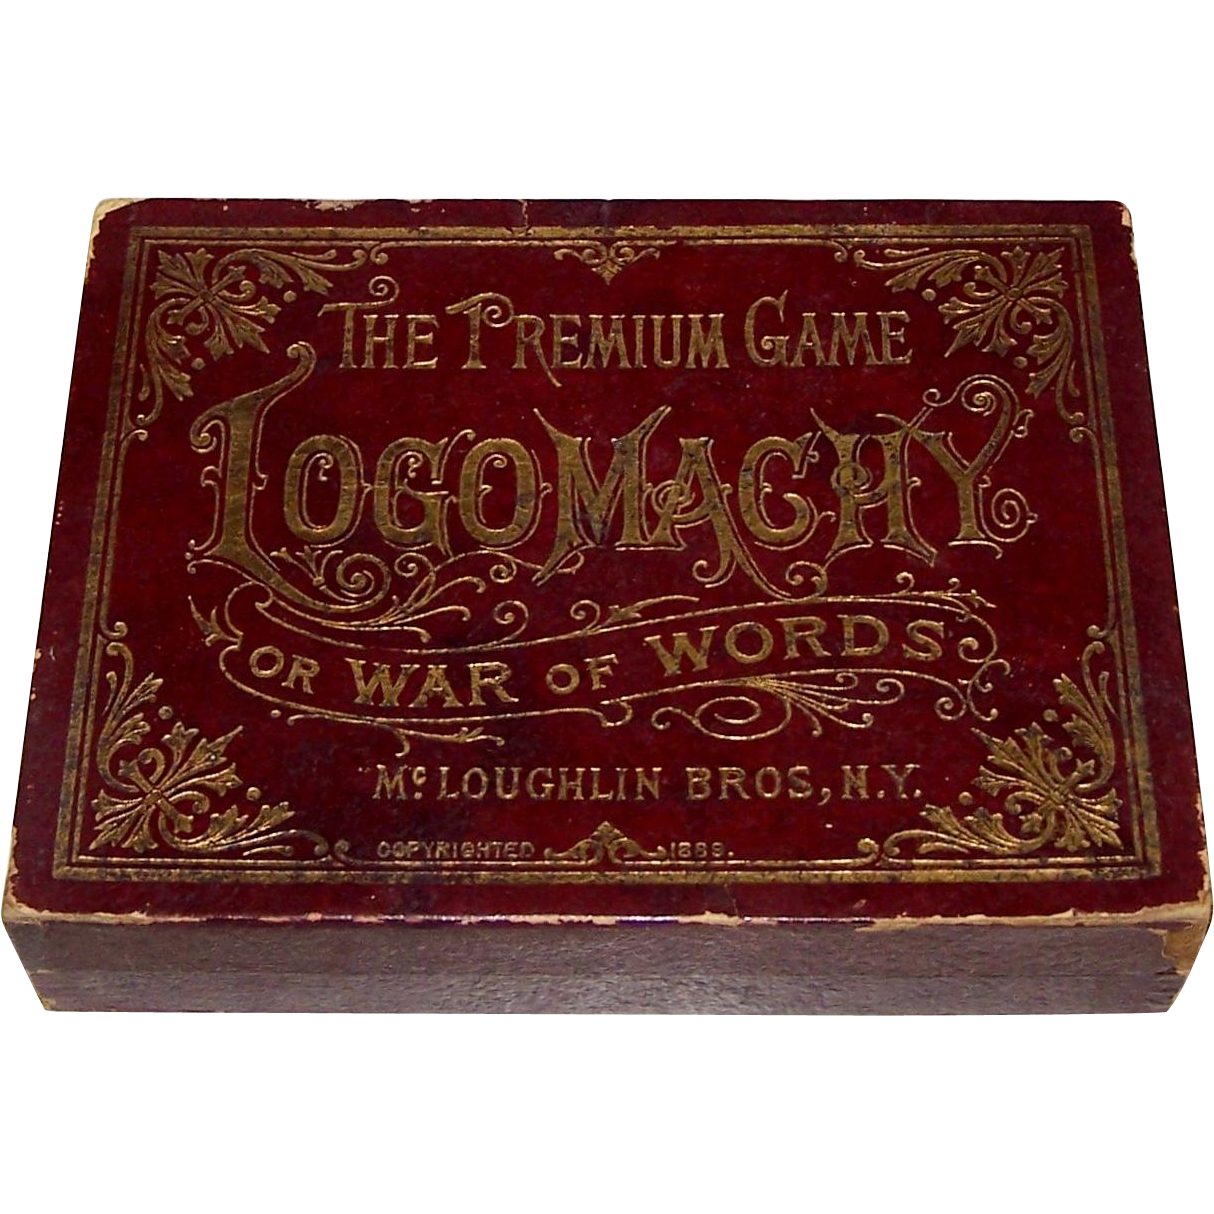 "McLoughlin Bros. ""Logomachy or War of Words"" Game, c.1889"